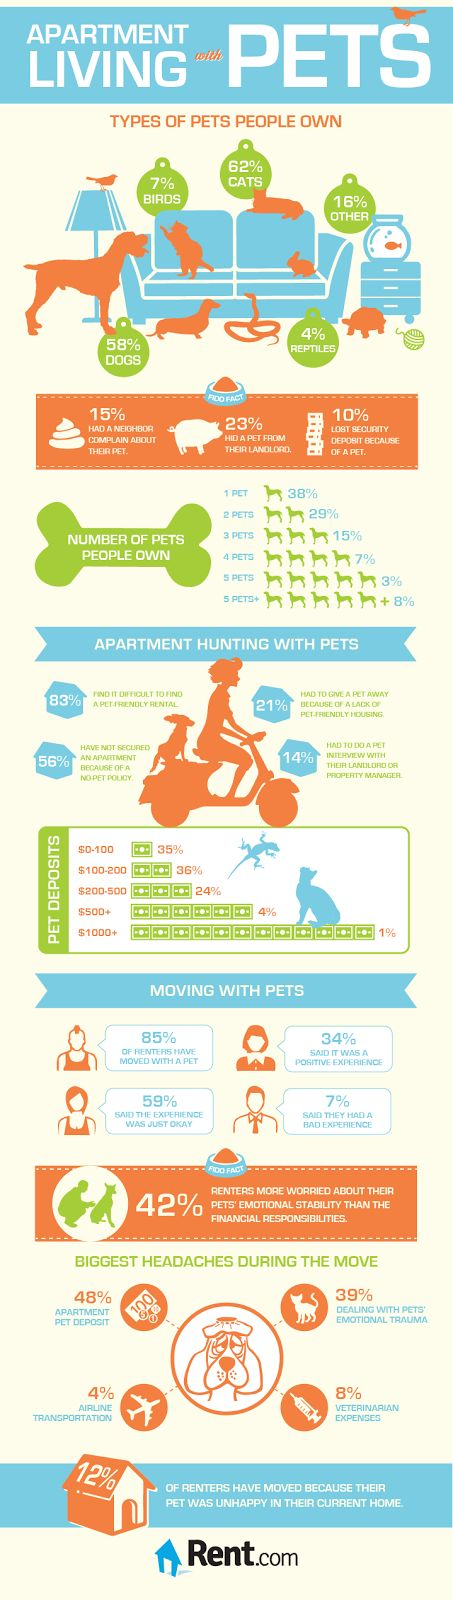 Apartment Living With Pets | Tips to Help Reduce Stress During a Move | Pawsitively Pets